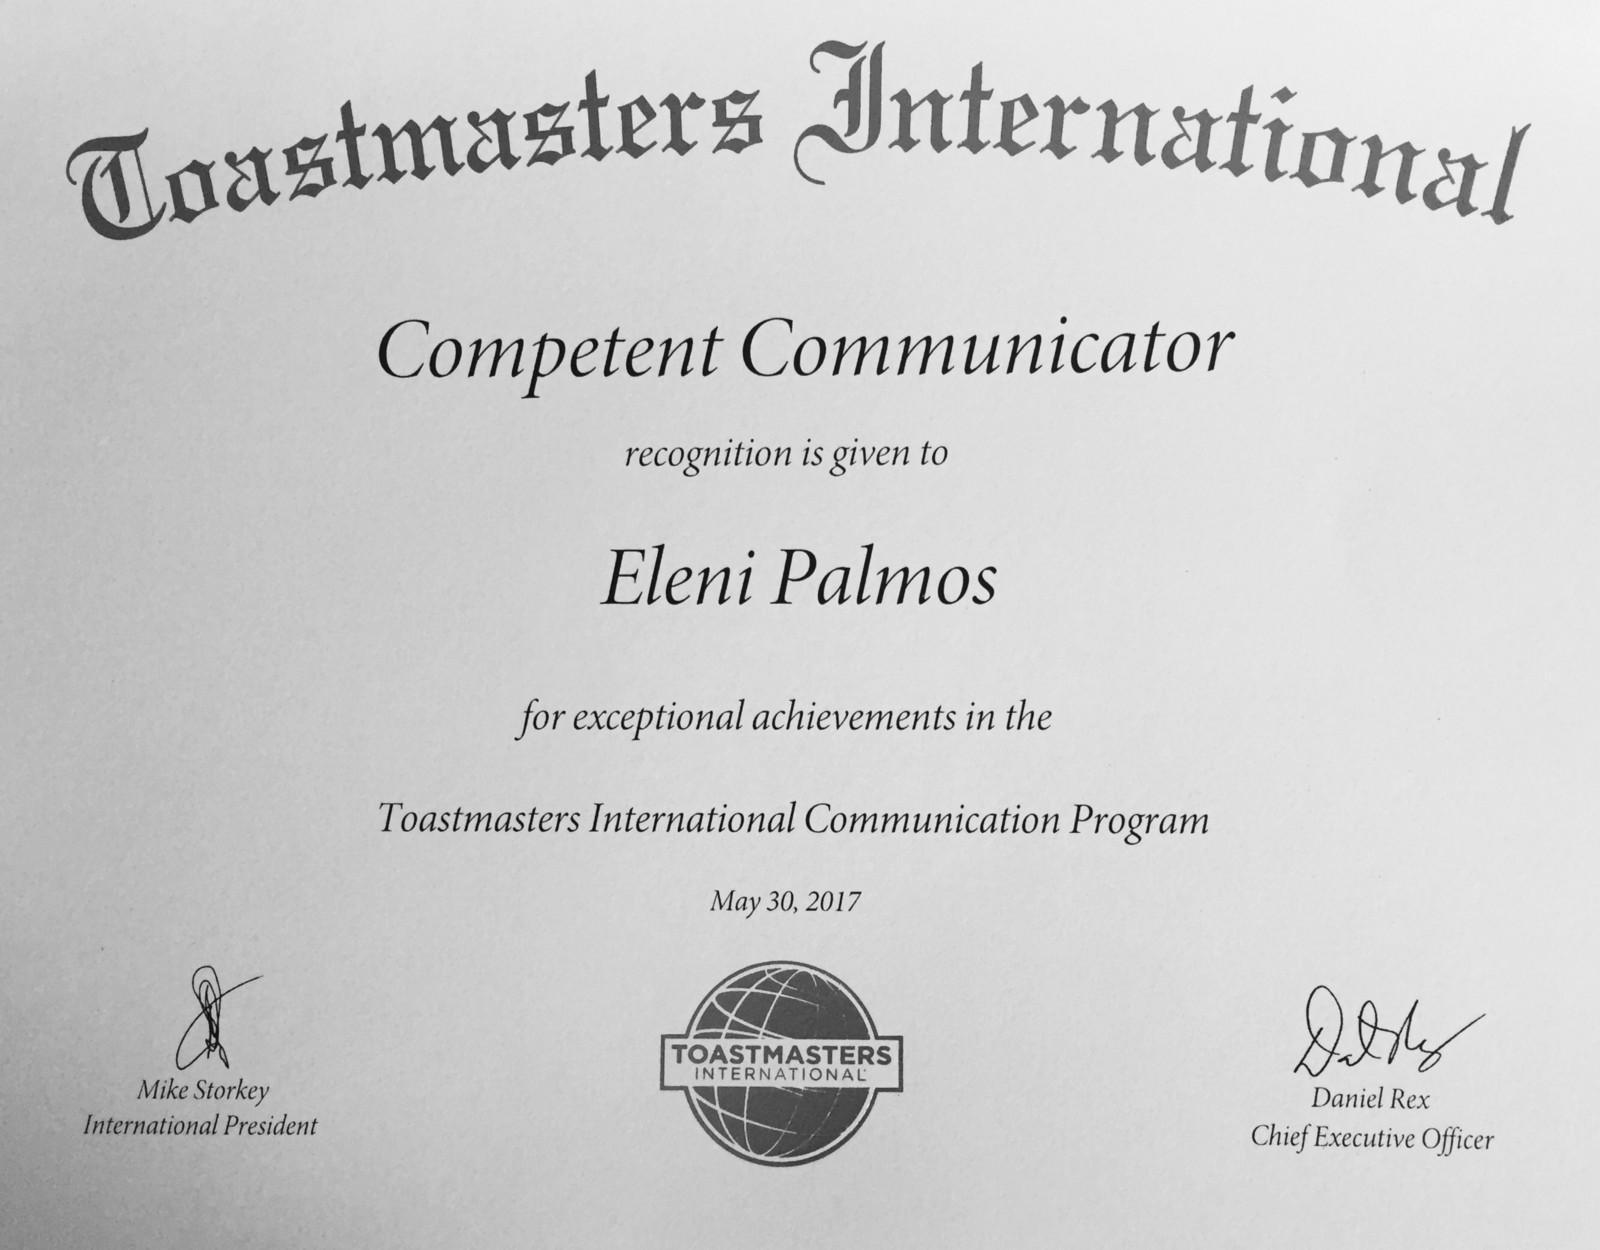 Competent Communicator is the first Toastmasters International Certification